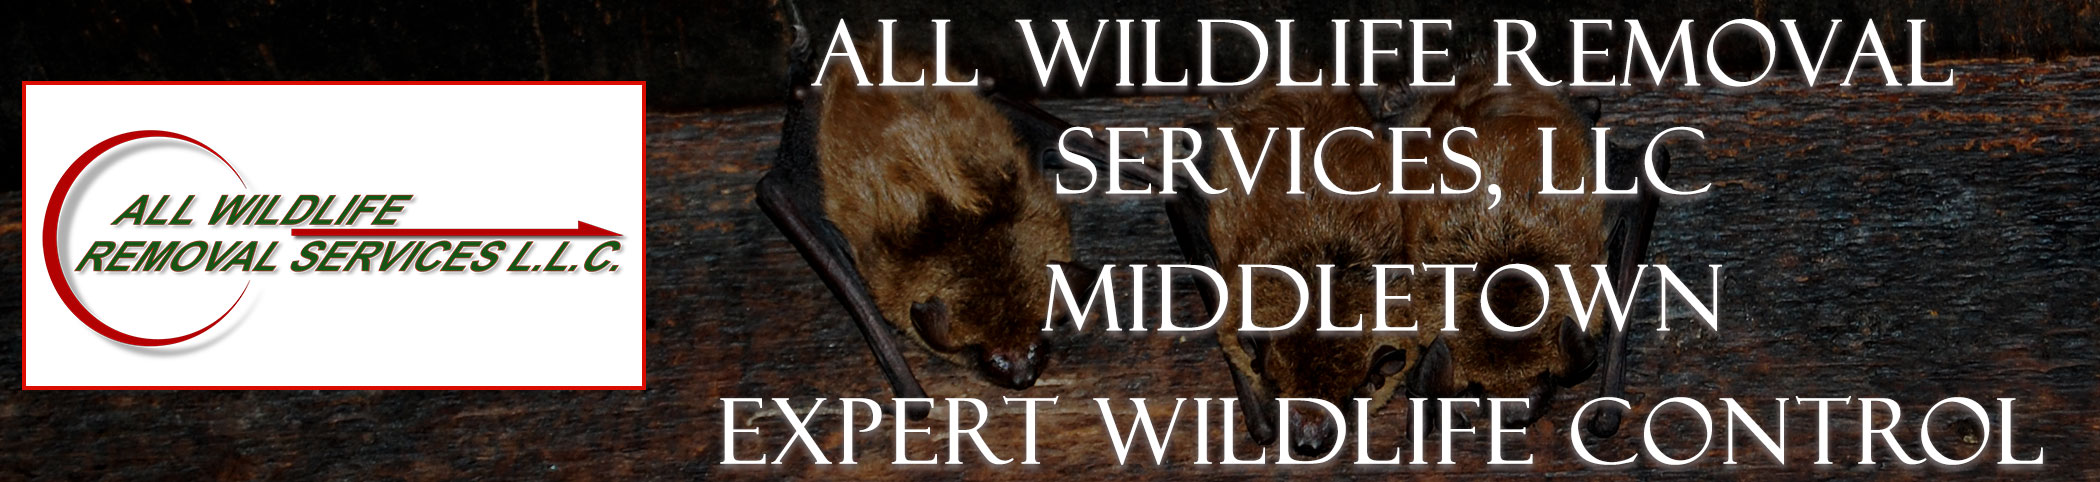 all-wildlife-removal-services-middletown-new-jersey-header